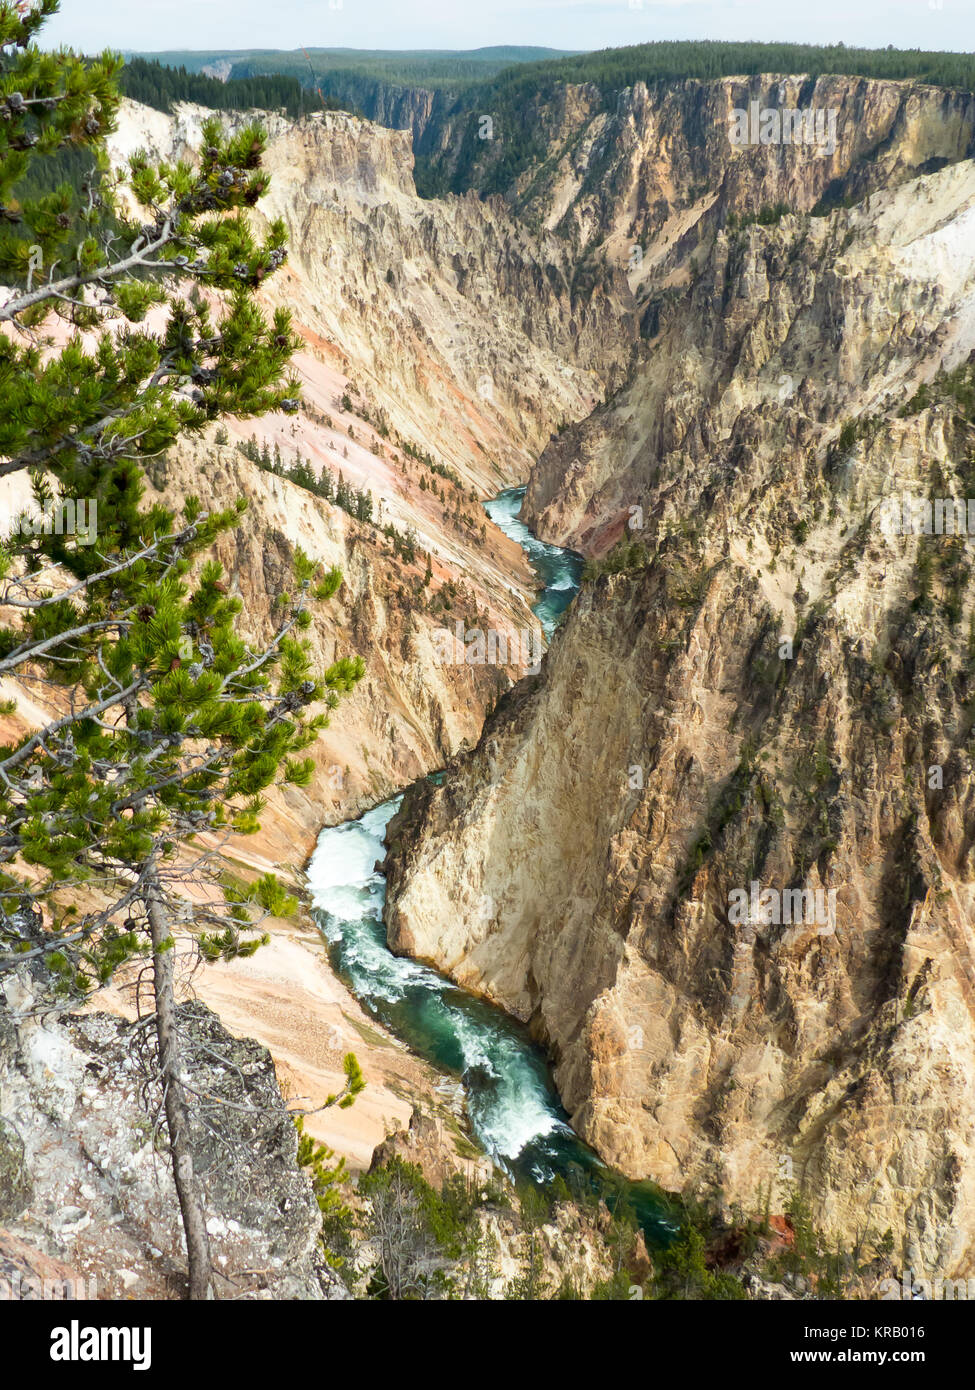 Yellowstone NP, Wyoming: Yellowstone Canyon from the North Rim Drive - Stock Image